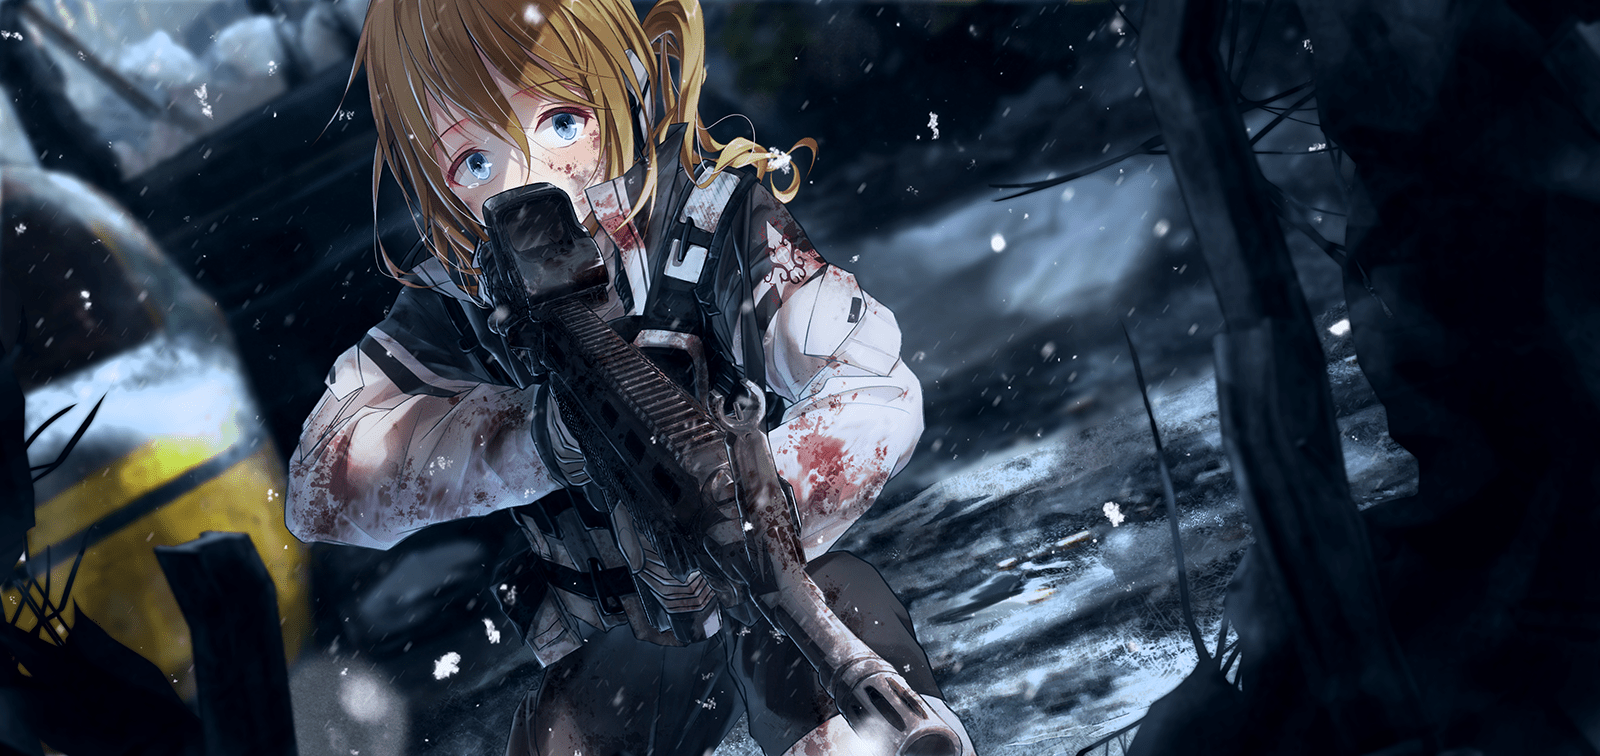 Neptunia 3d Desktop Wallpaper Download 1600x756 Anime Girl Military Scared Expression